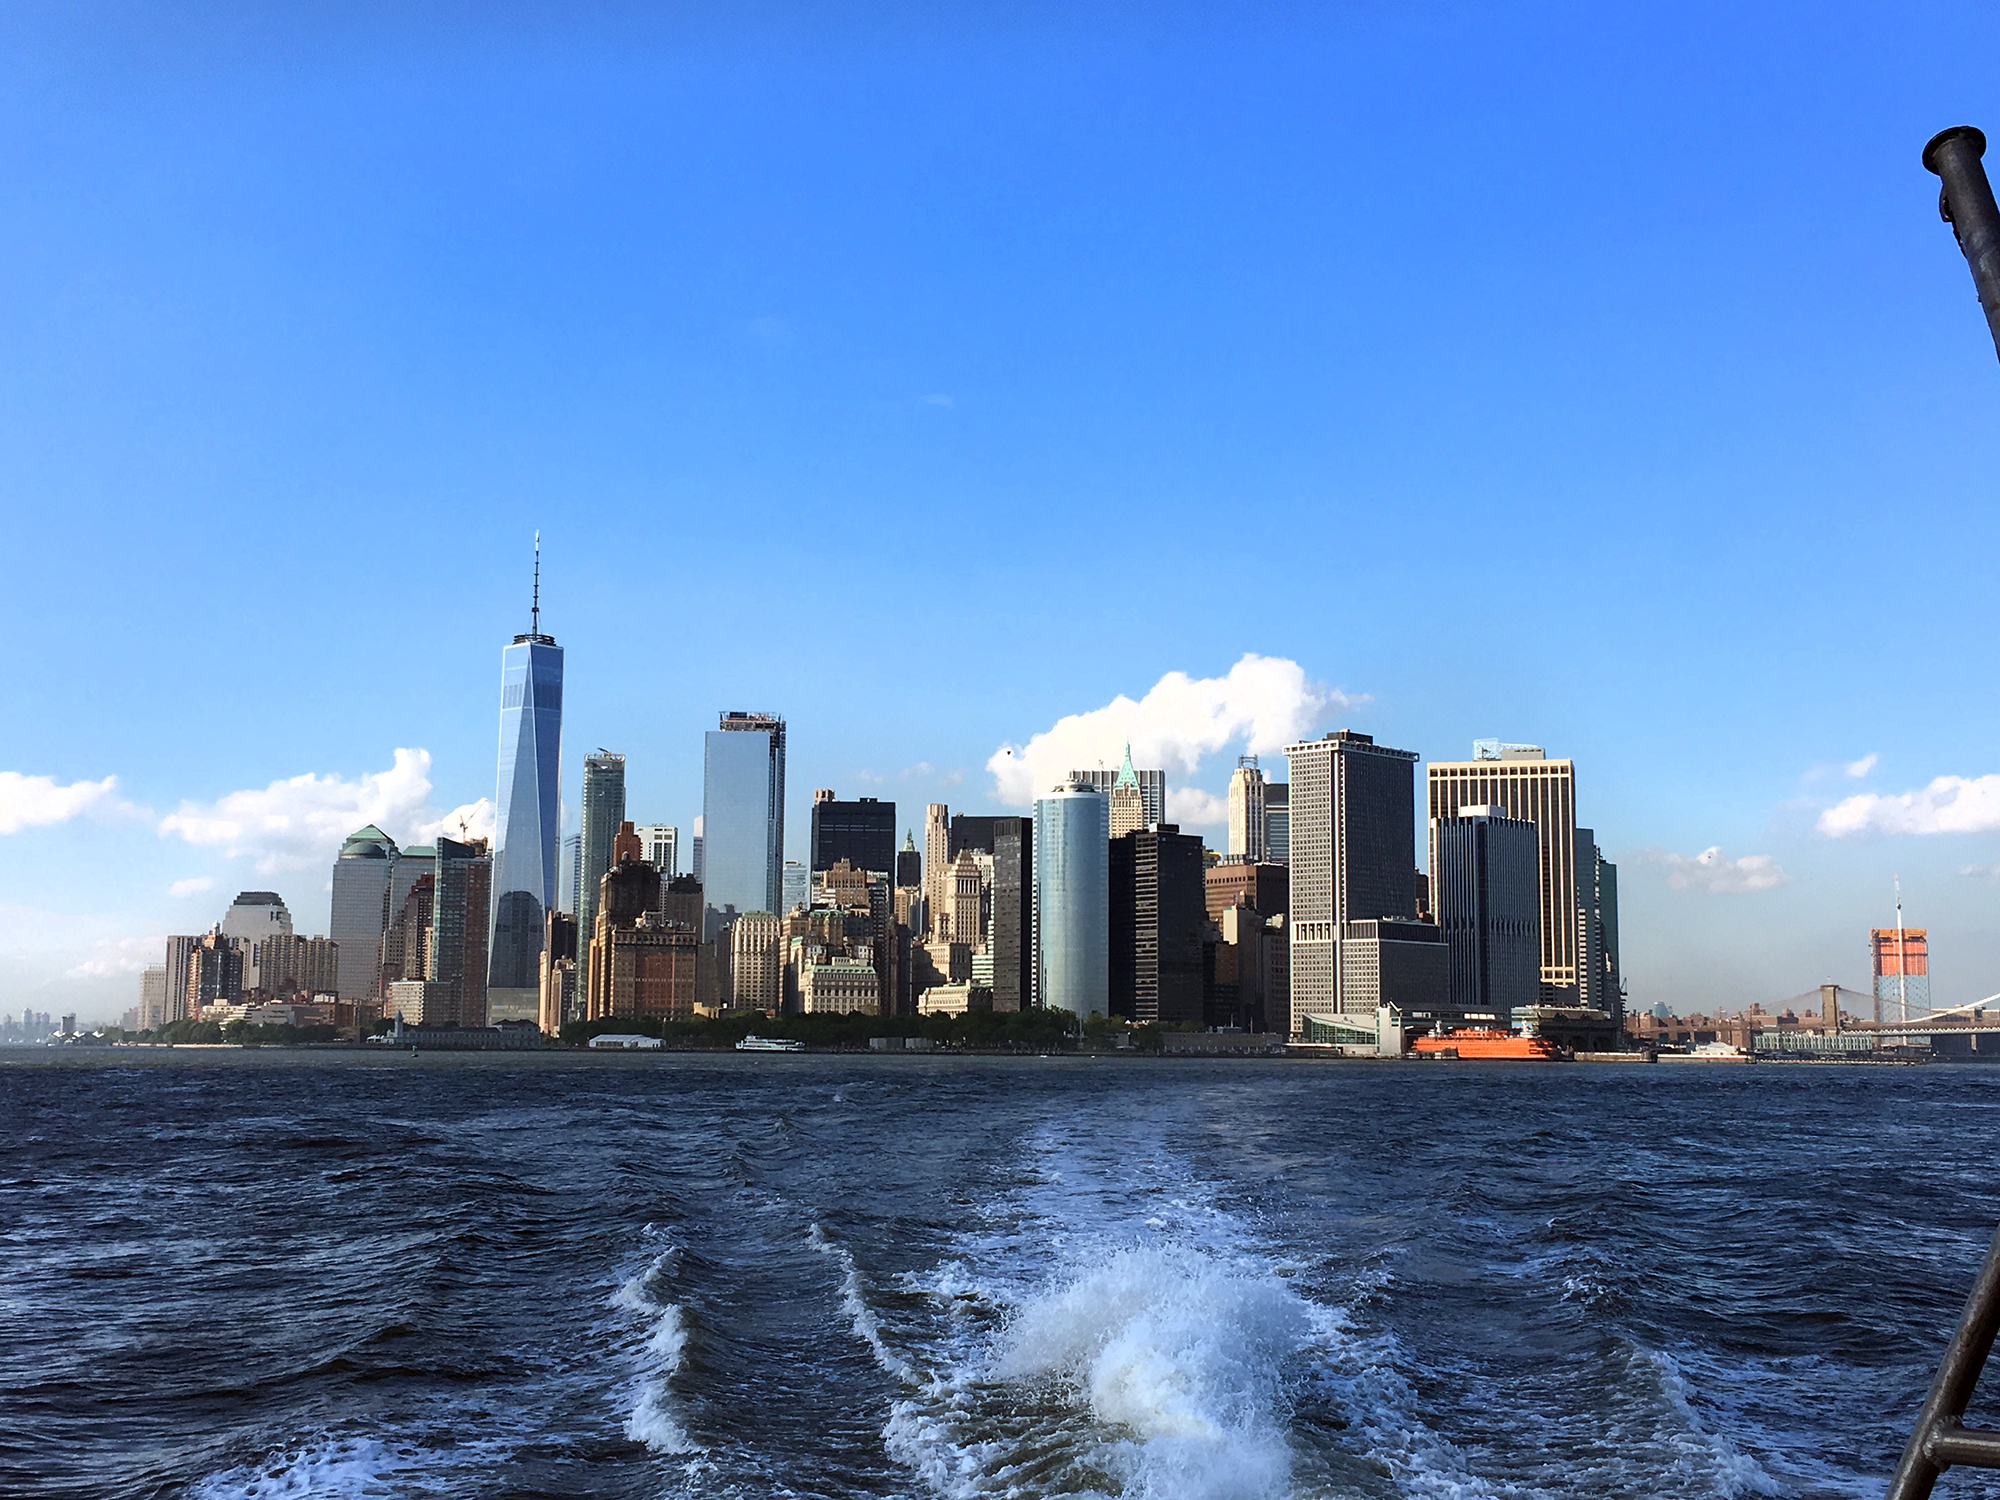 The NYC Ferry's Rockaway Ferry offers Upscale Refreshments